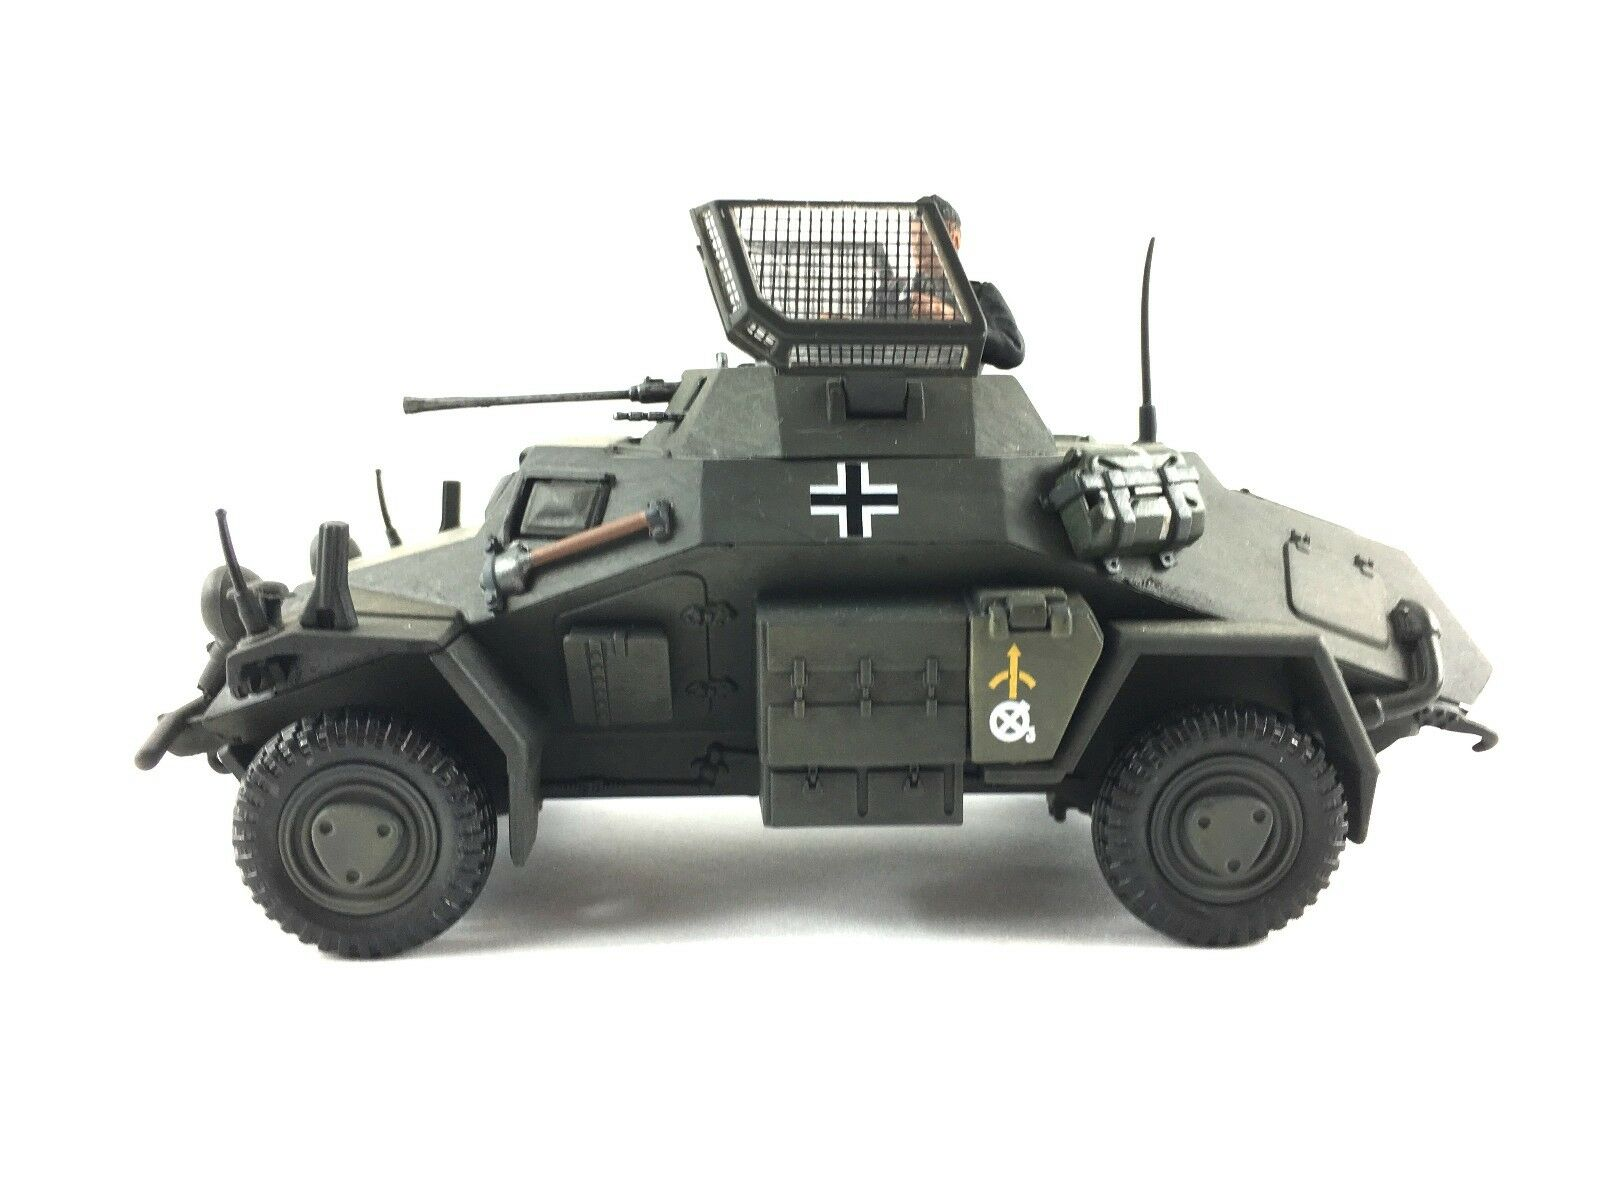 1:32 21st Century Toys Ultimate Soldier German Sdkfz 222 Armored Vehicle